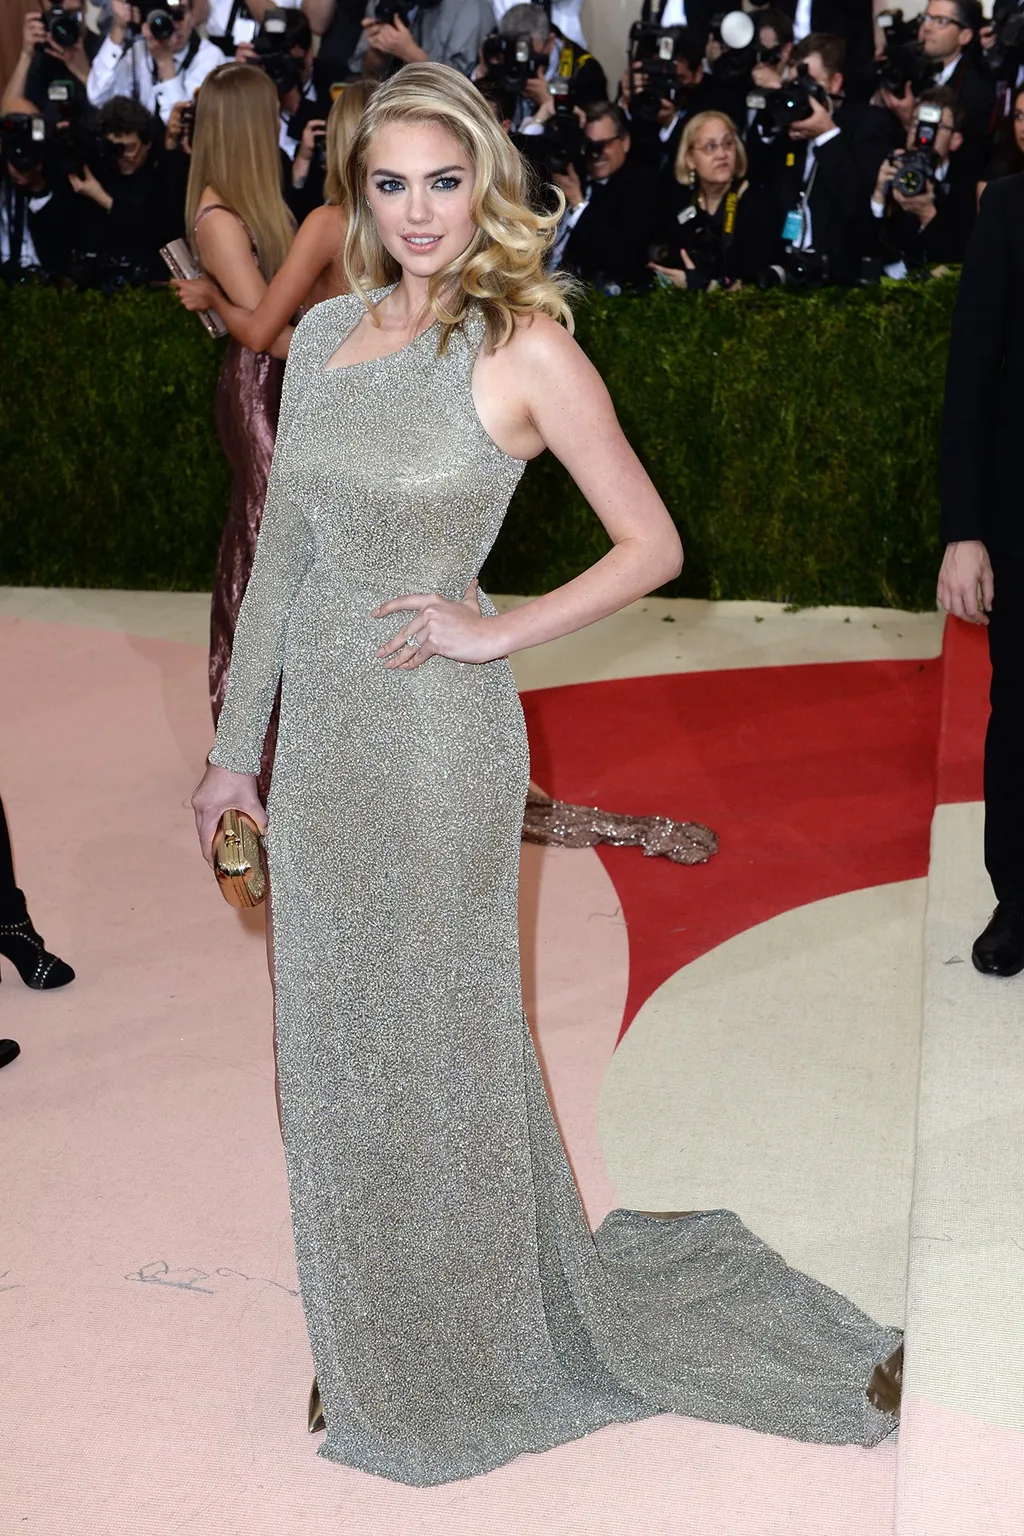 Kate Upton Wears Her One Side LOng Sleeves Sequin Gown with a Gold Clutch